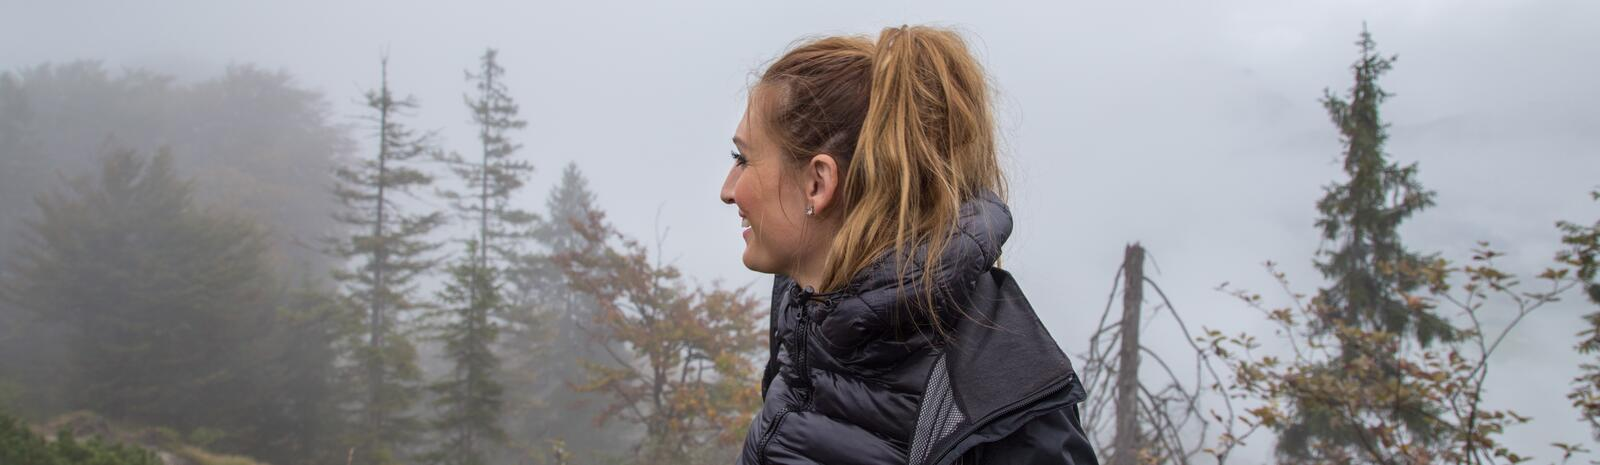 Johanna enjoying the rain | © Best Mountain Artists